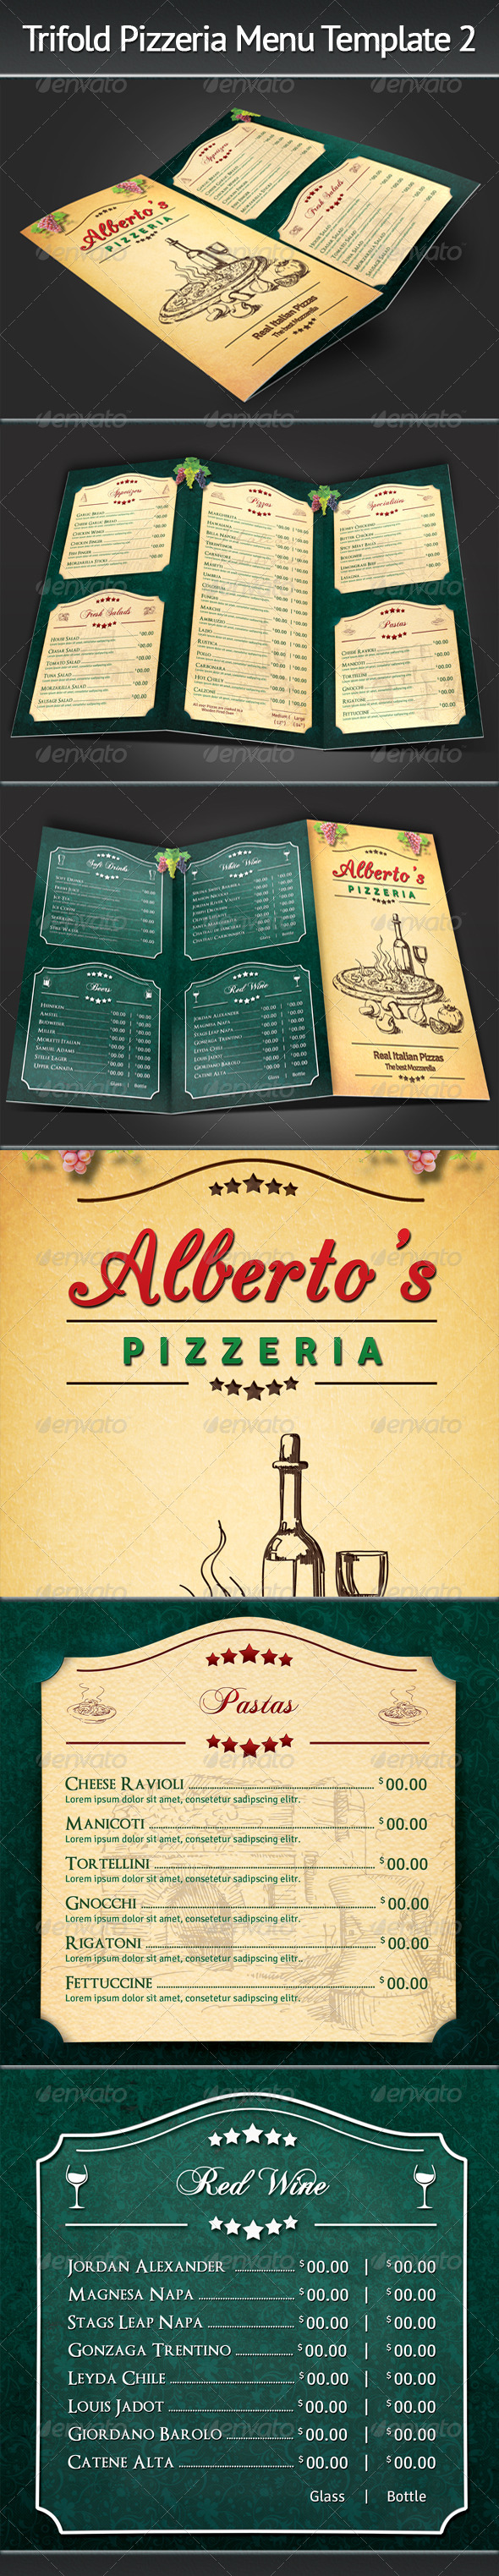 GraphicRiver Trifold Pizzeria Menu Template 2 7596742